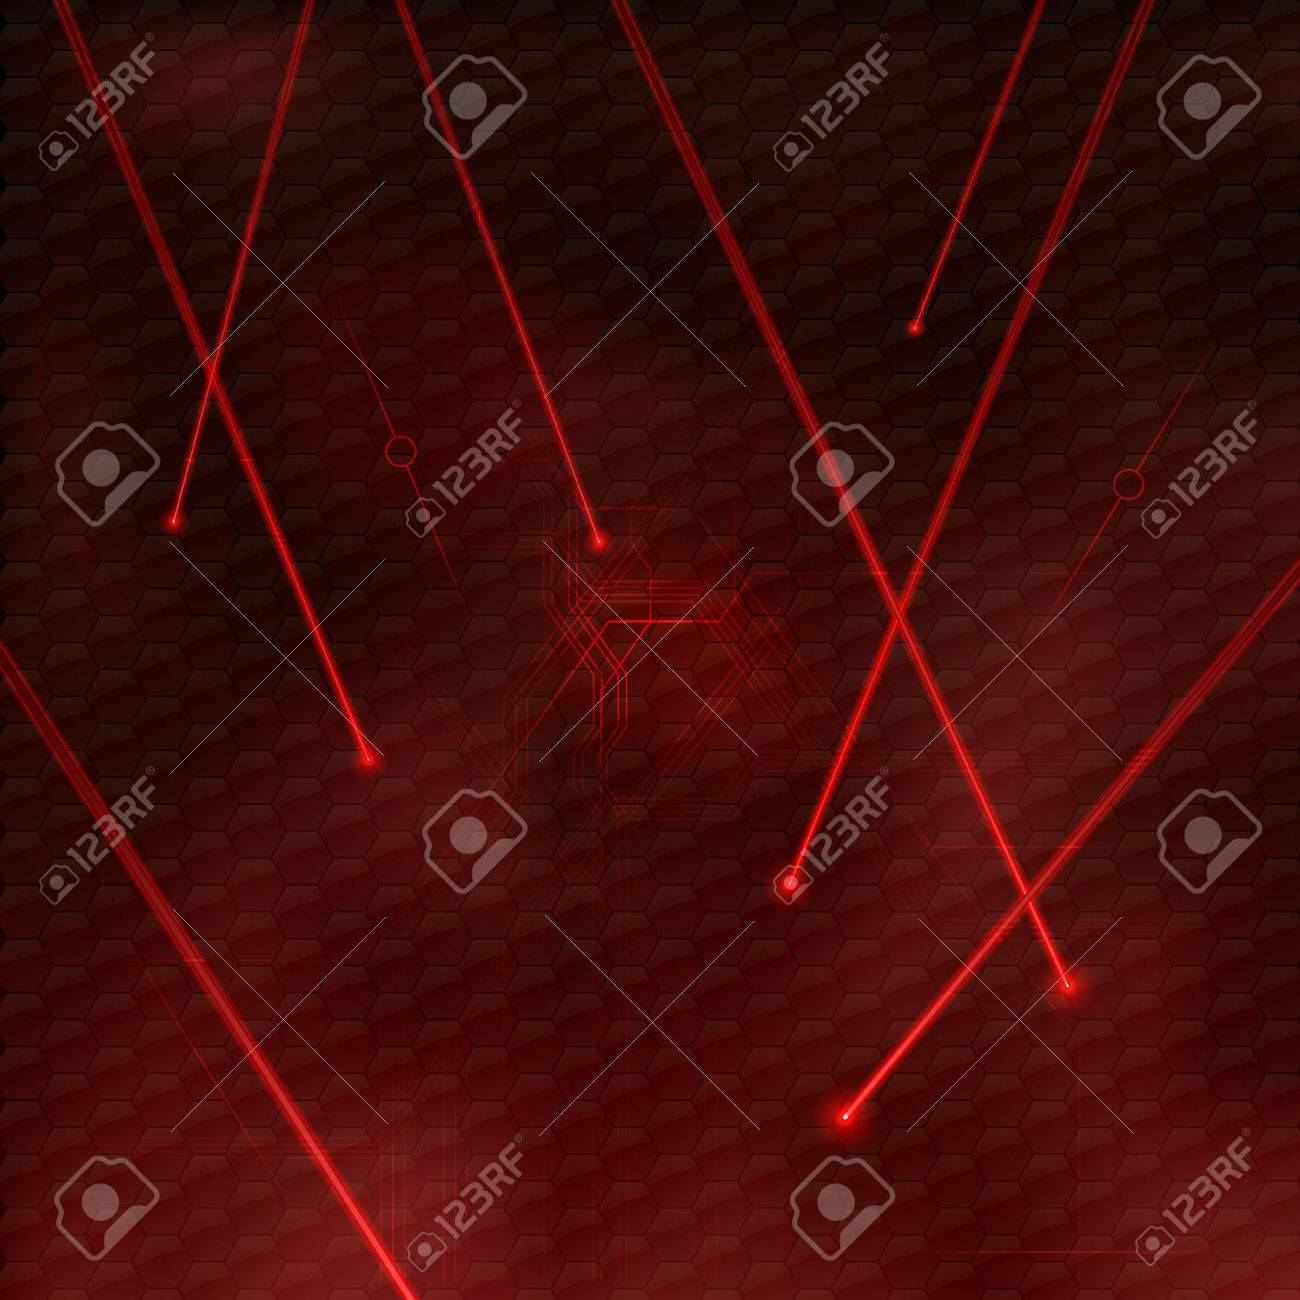 Red lasers as abstract background. Vector texture of shining beams. - 30798809